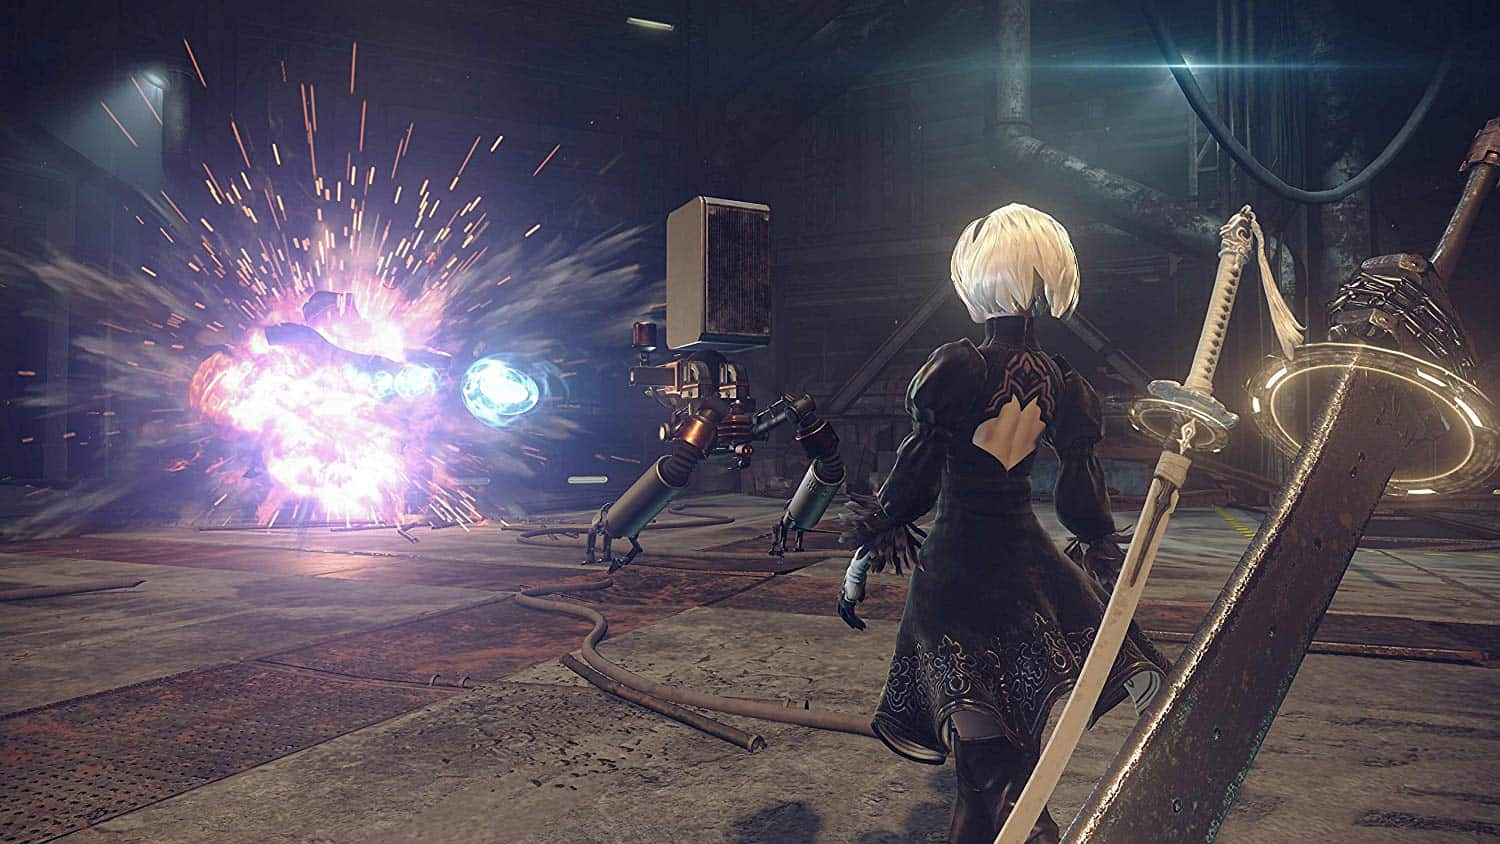 Nier Automata Review: is Nier Automata Game worth Buying?